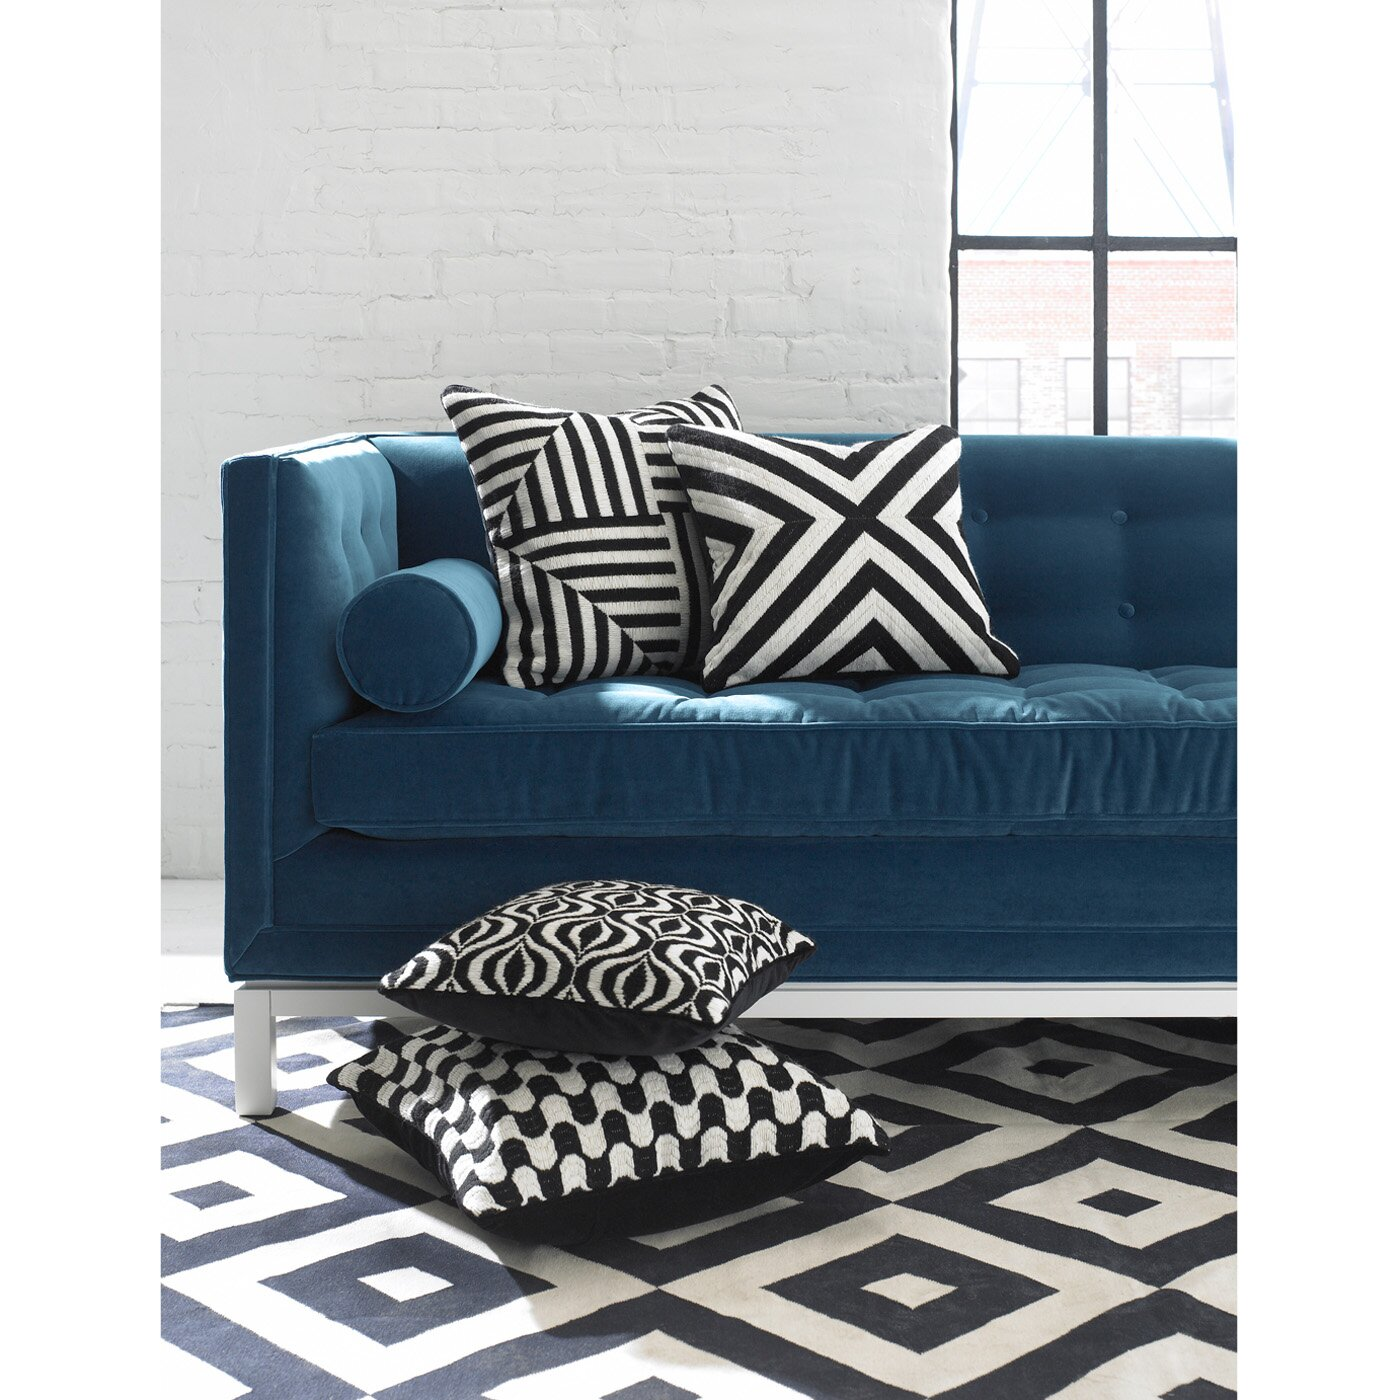 Throw Pillows Justice : Jonathan Adler Bargello Waves Wool Throw Pillow & Reviews Wayfair